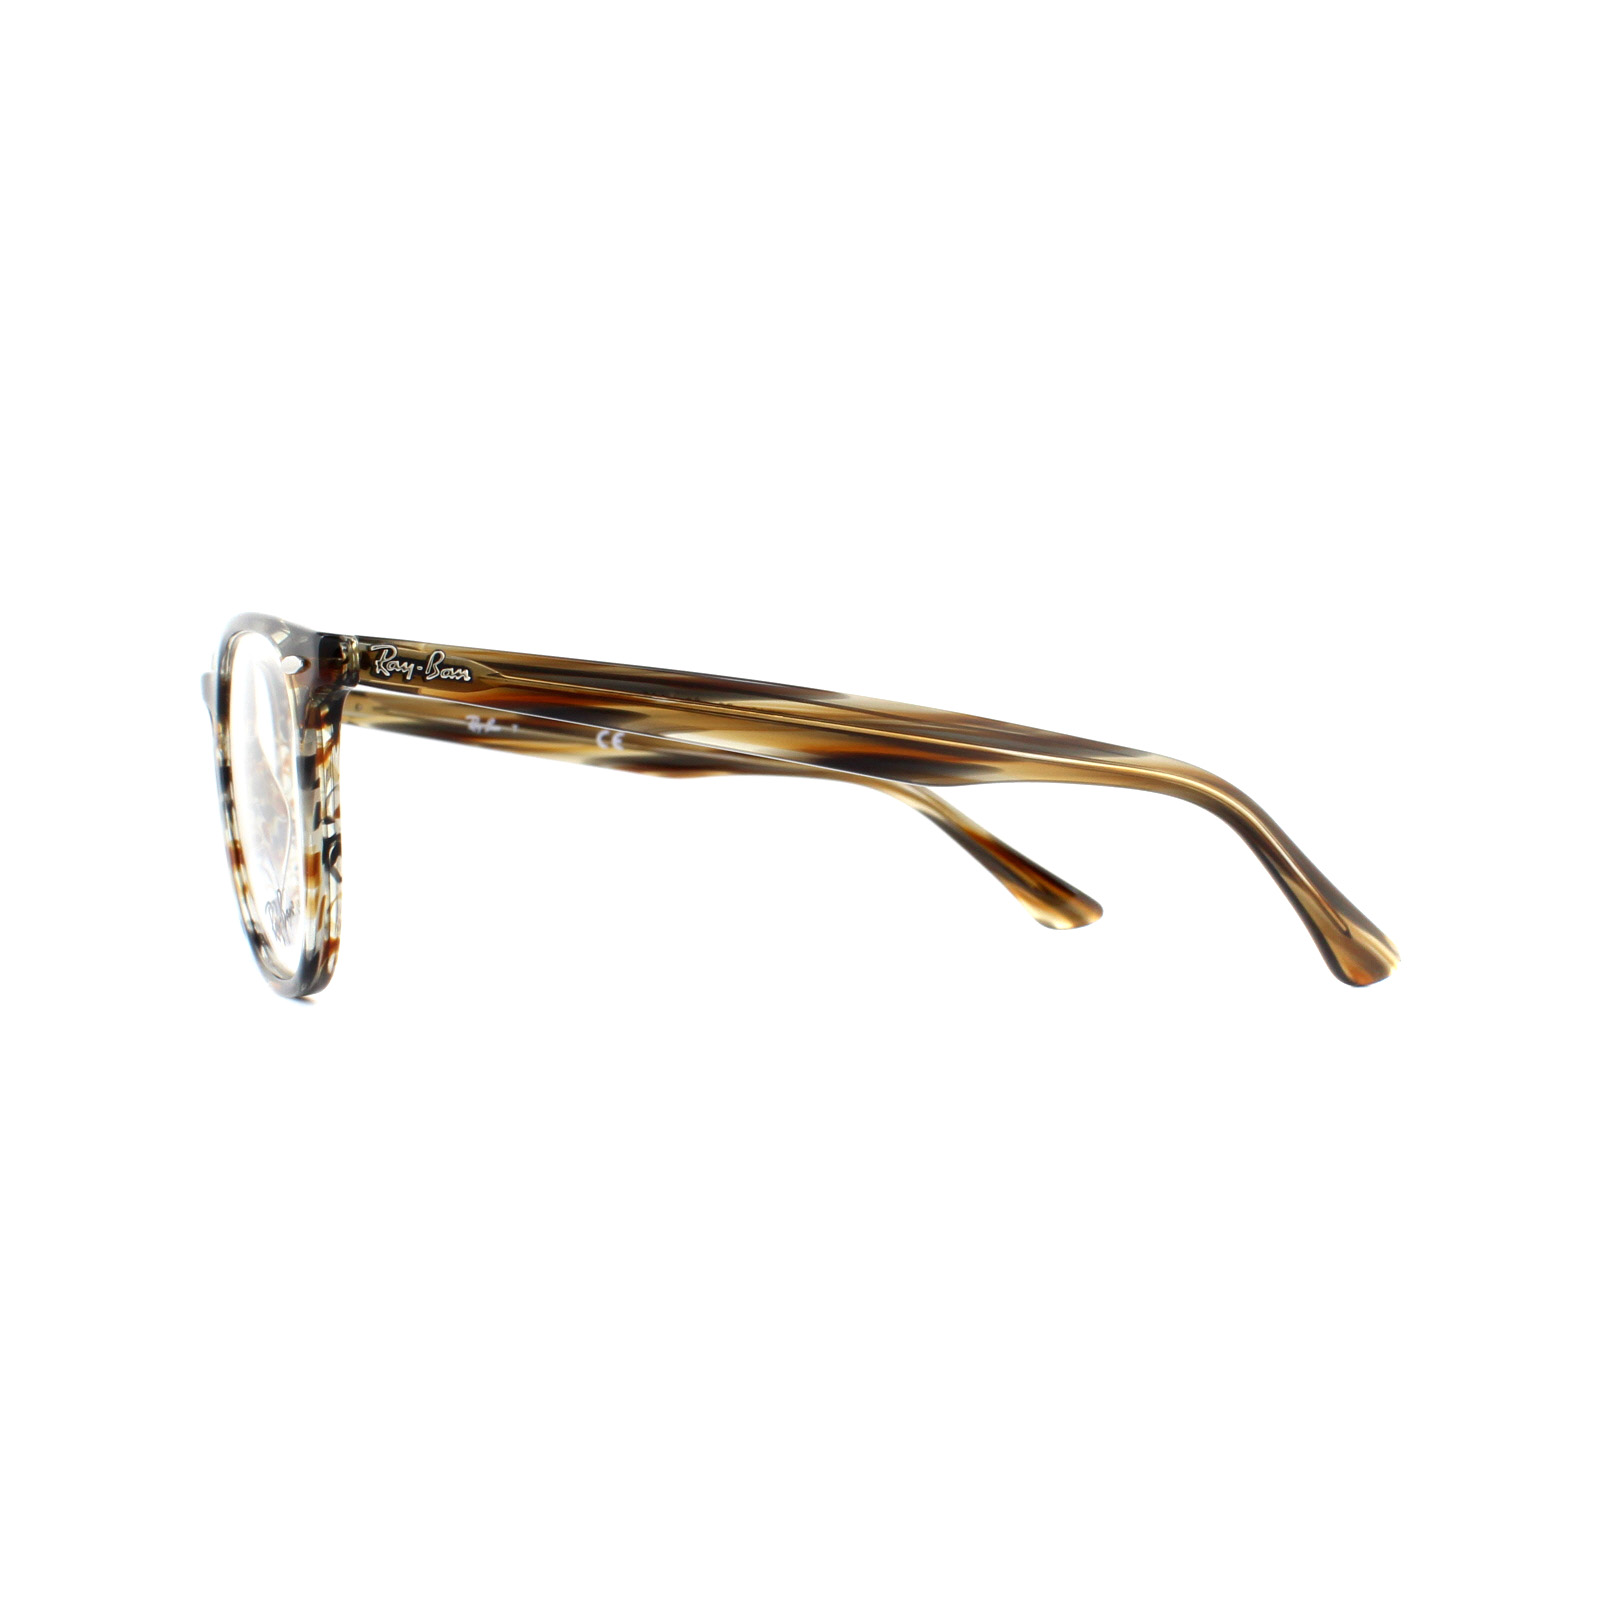 60a871a9527 Sentinel Ray-Ban Glasses Frames 7159 5798 Brown Grey Striped 50mm